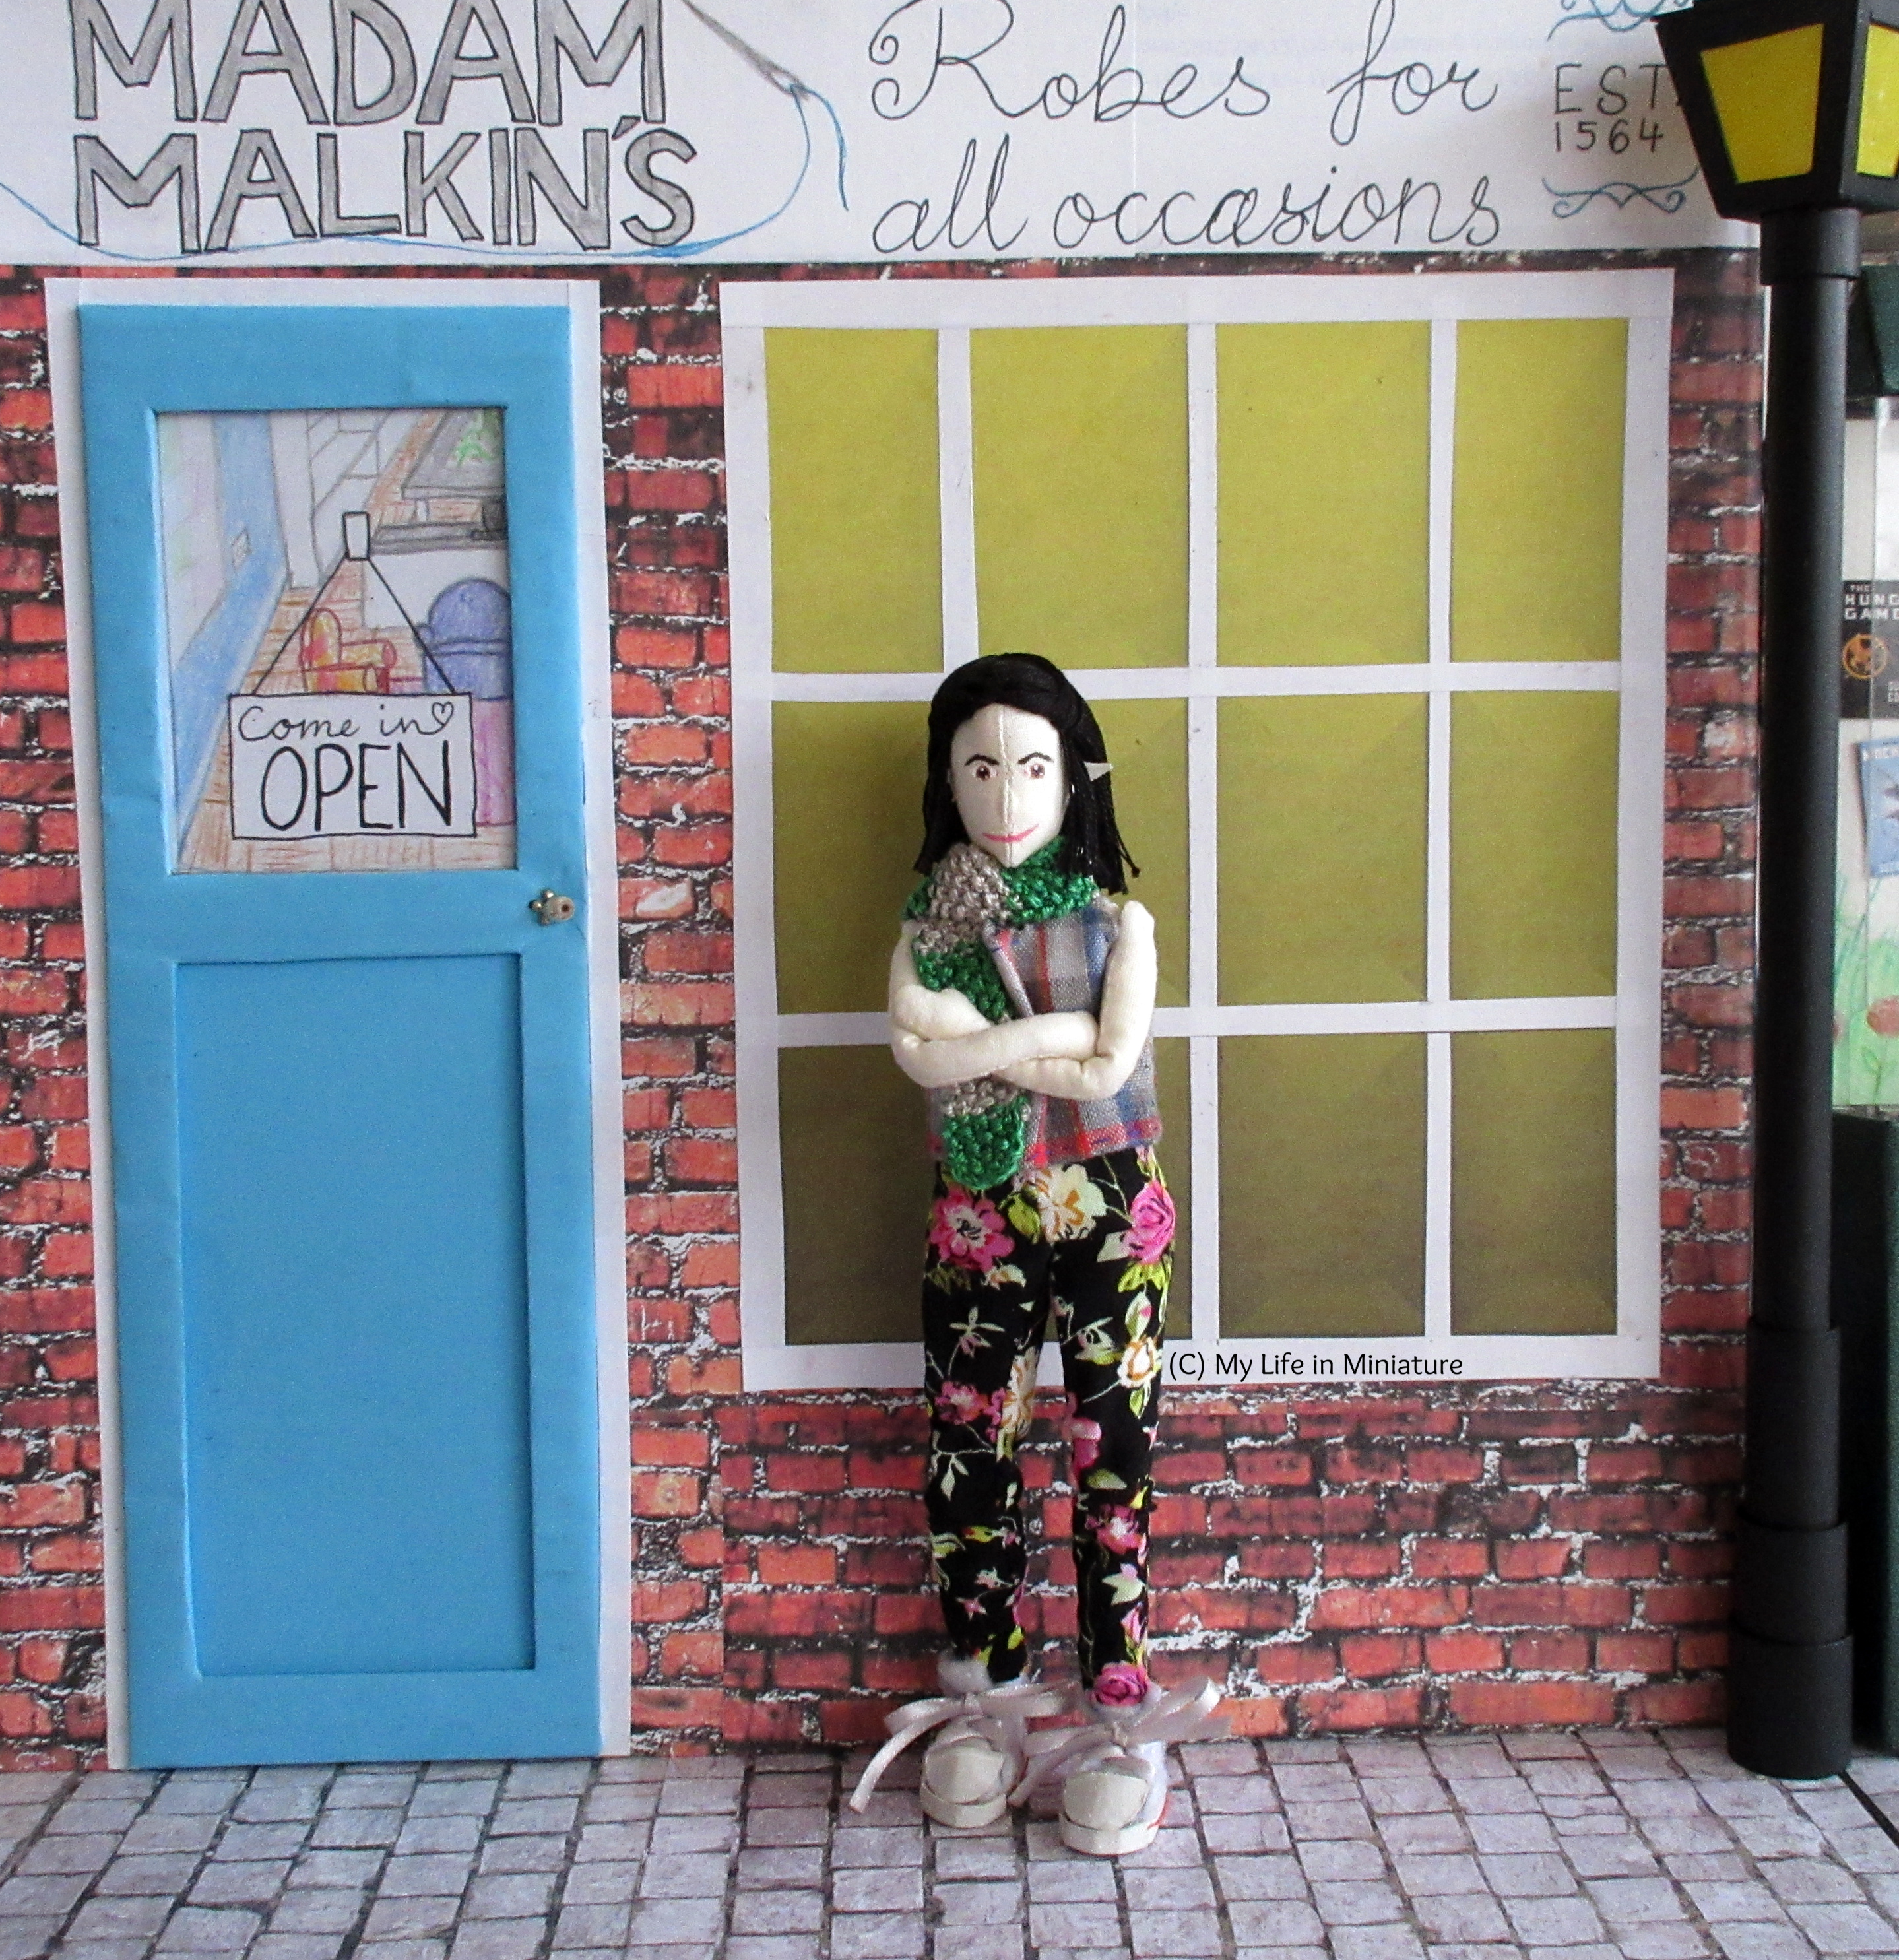 Tiffany stands outside Madam Malkins', smiling at the camera. Her arms are crossed, and she wears a silver-and-green knitted scarf.